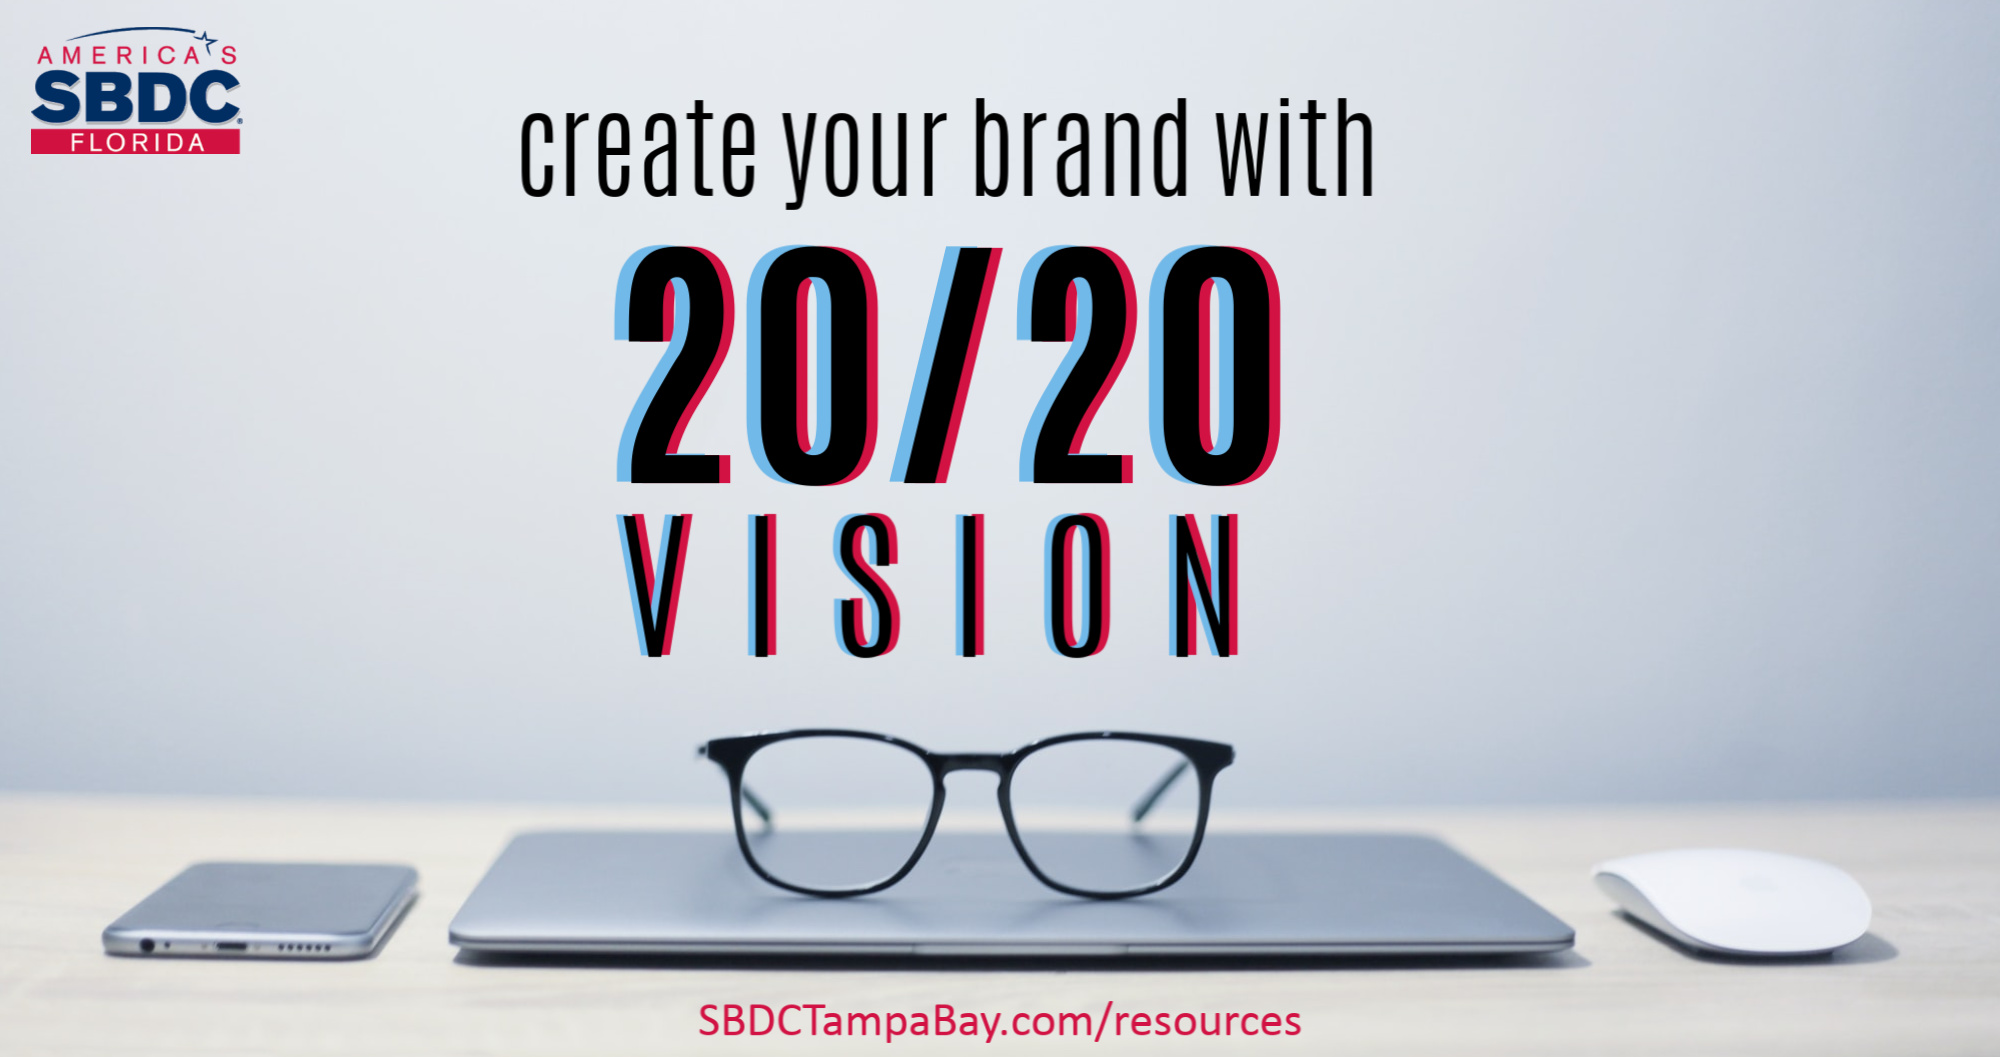 In 2020, Create Your Brand With 20/20 Vision